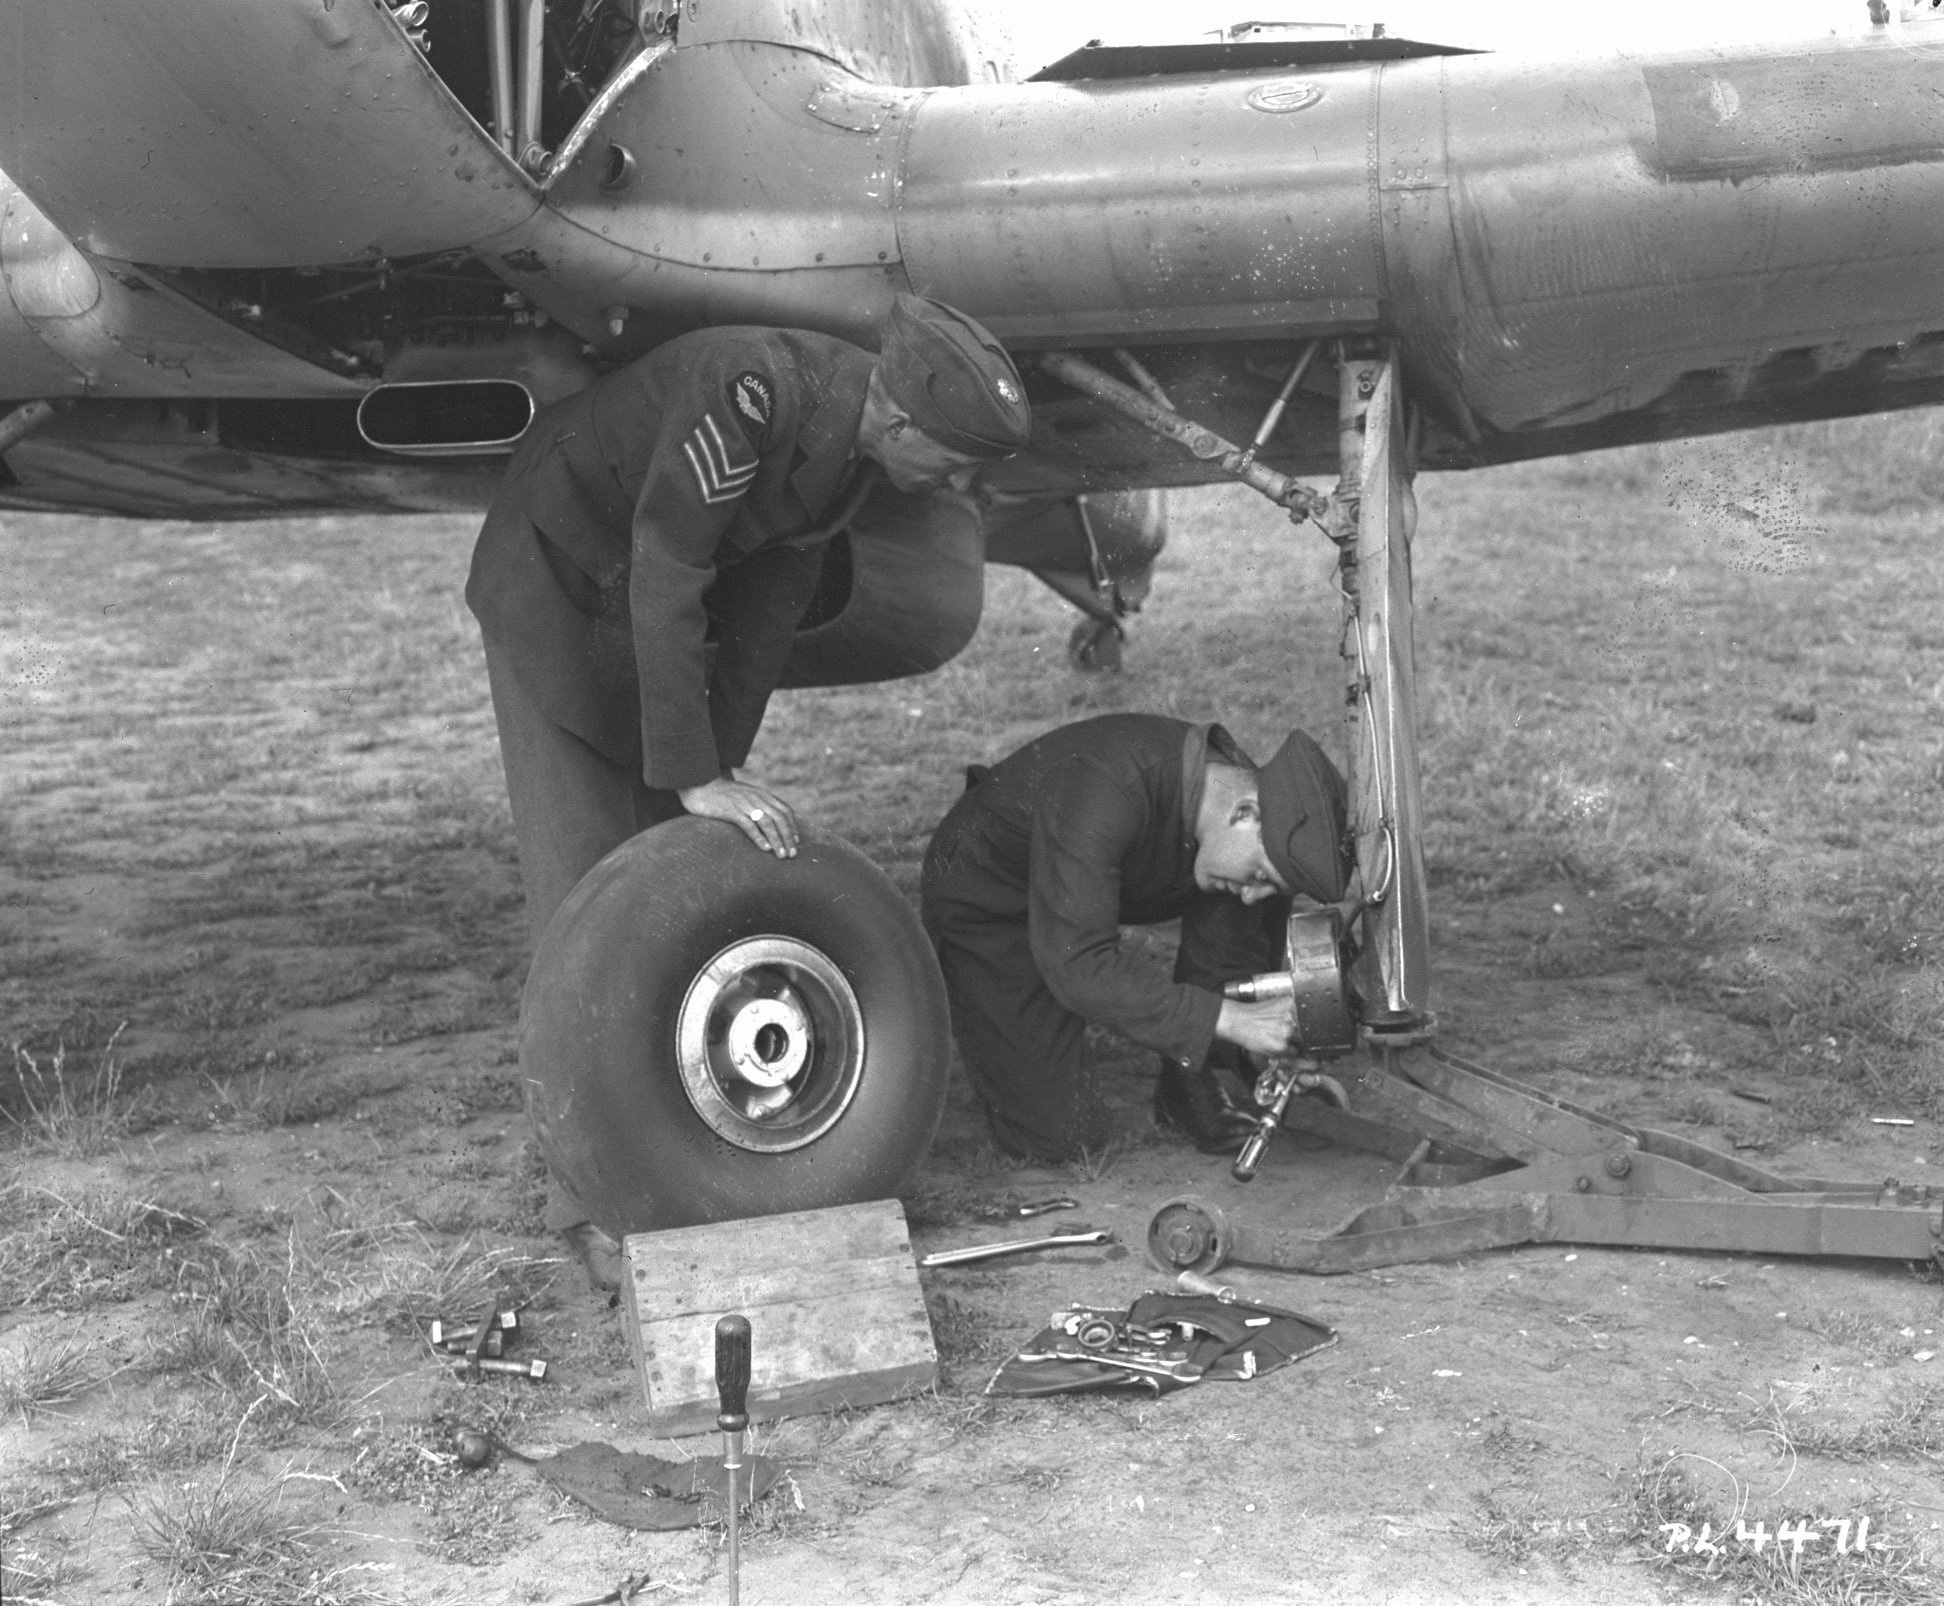 Members of No. 1 Squadron's ground crew tend to a Hurricane. While Leading Aircraftman P.J.  Thurgeon removes the port wheel from a Hurricane because of faulty brakes, Sergeant Bob Fair checks to see if the craft should go into maintenance to be repaired. Often forgotten, No.1's ground crew worked tirelessly to keep the aircraft in good repair; without them the squadron could not have flown. PHOTO: Library and Archives of Canada, PL-4471